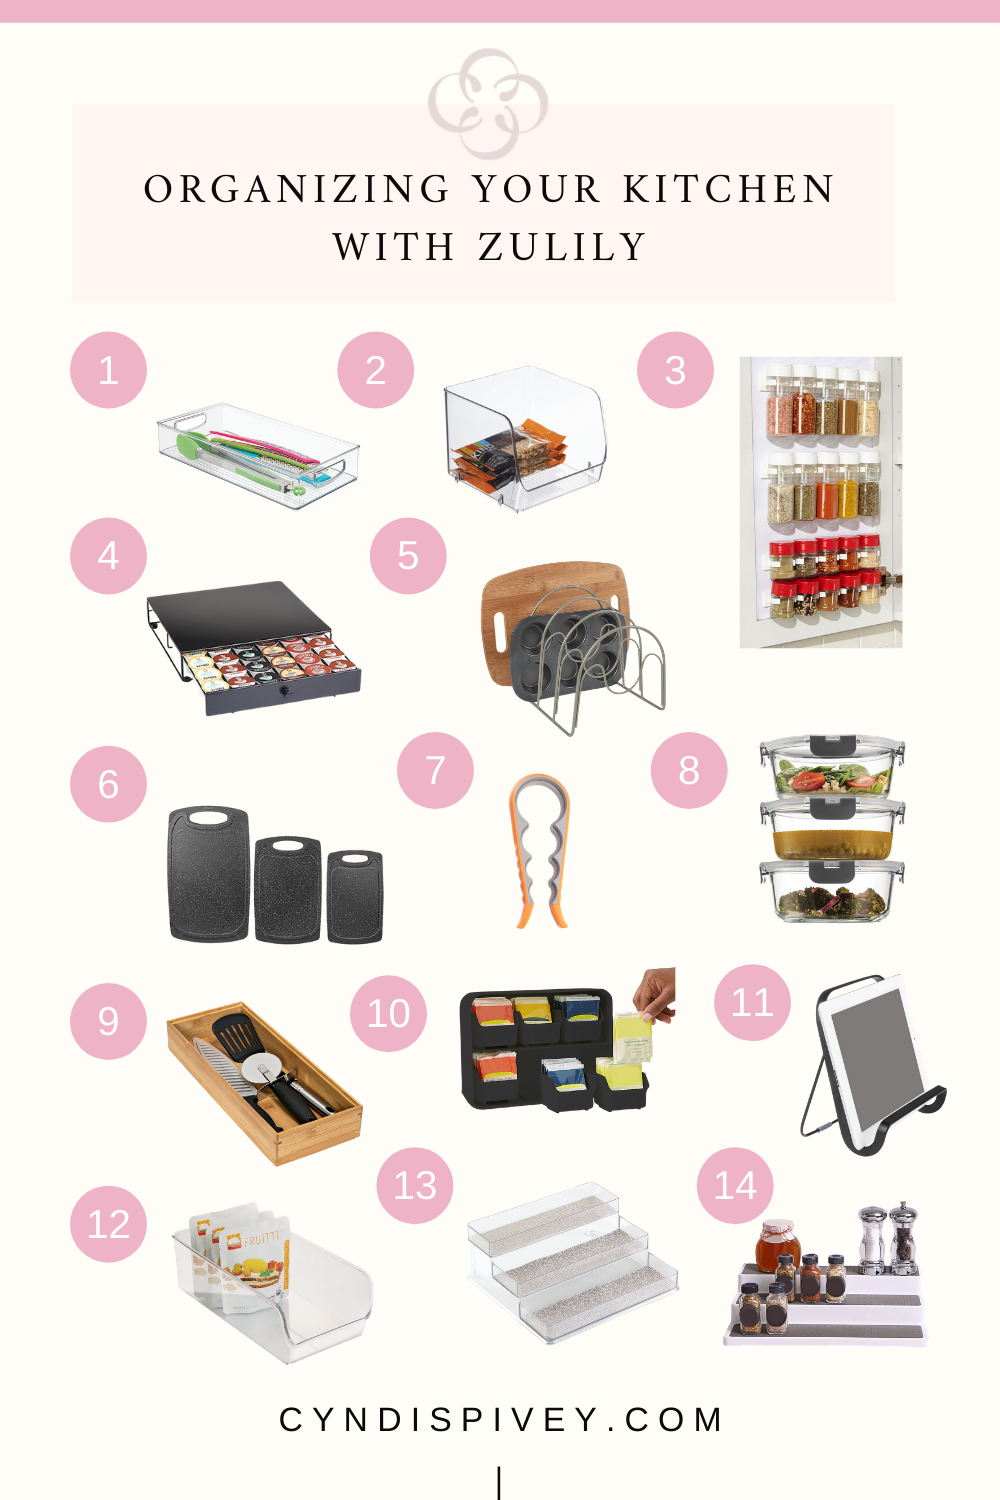 Organizing Your Kitchen with Zulily